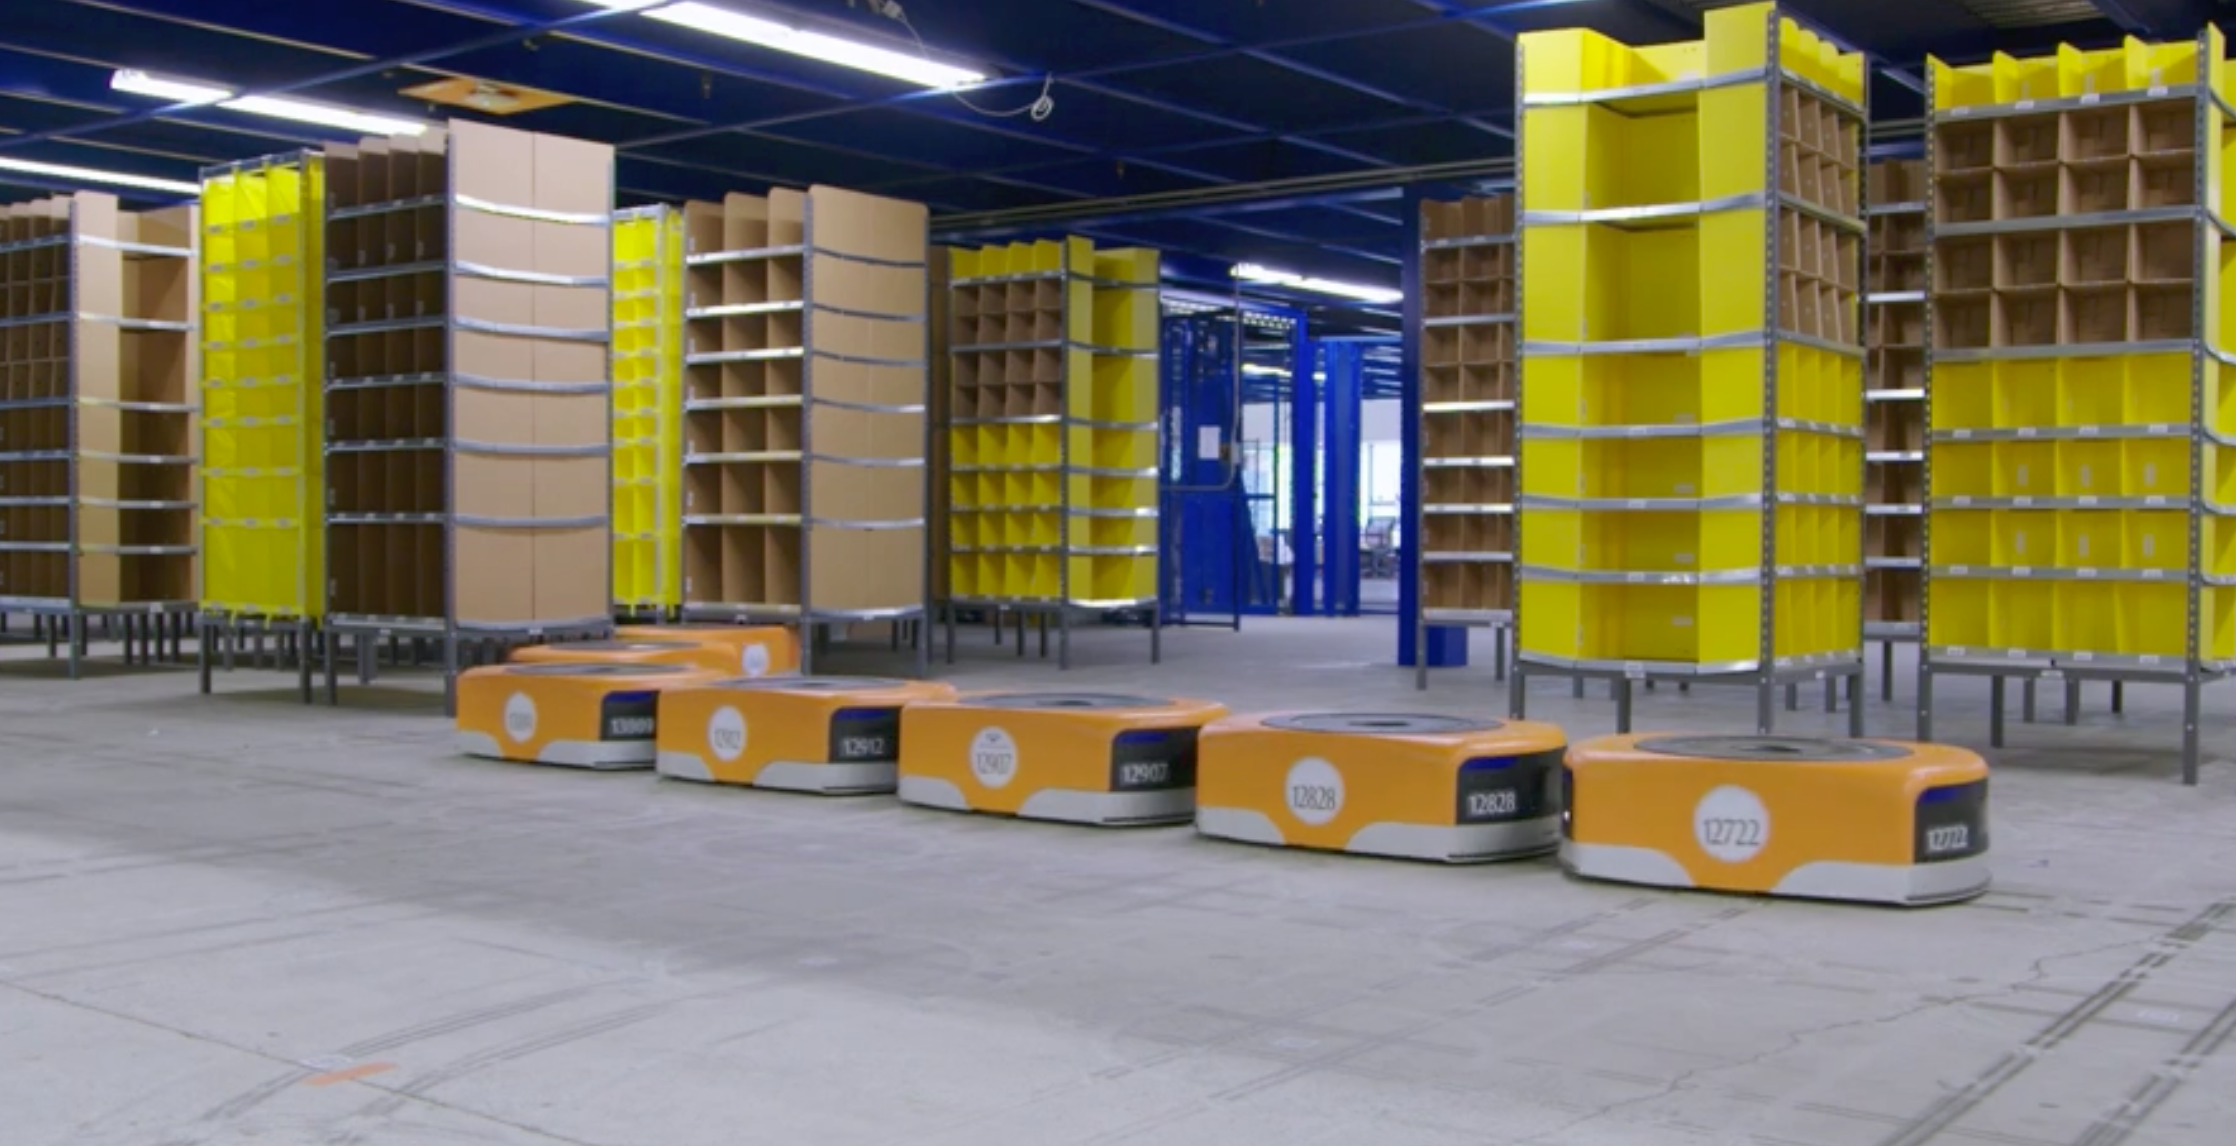 Short, squat robots drive around Amazon's fulfillment centers and pick up stacks that normally are full of products. Then, the robots take requested stacks to warehouse employees for packing purposes (in this photo, the stacks are empty).